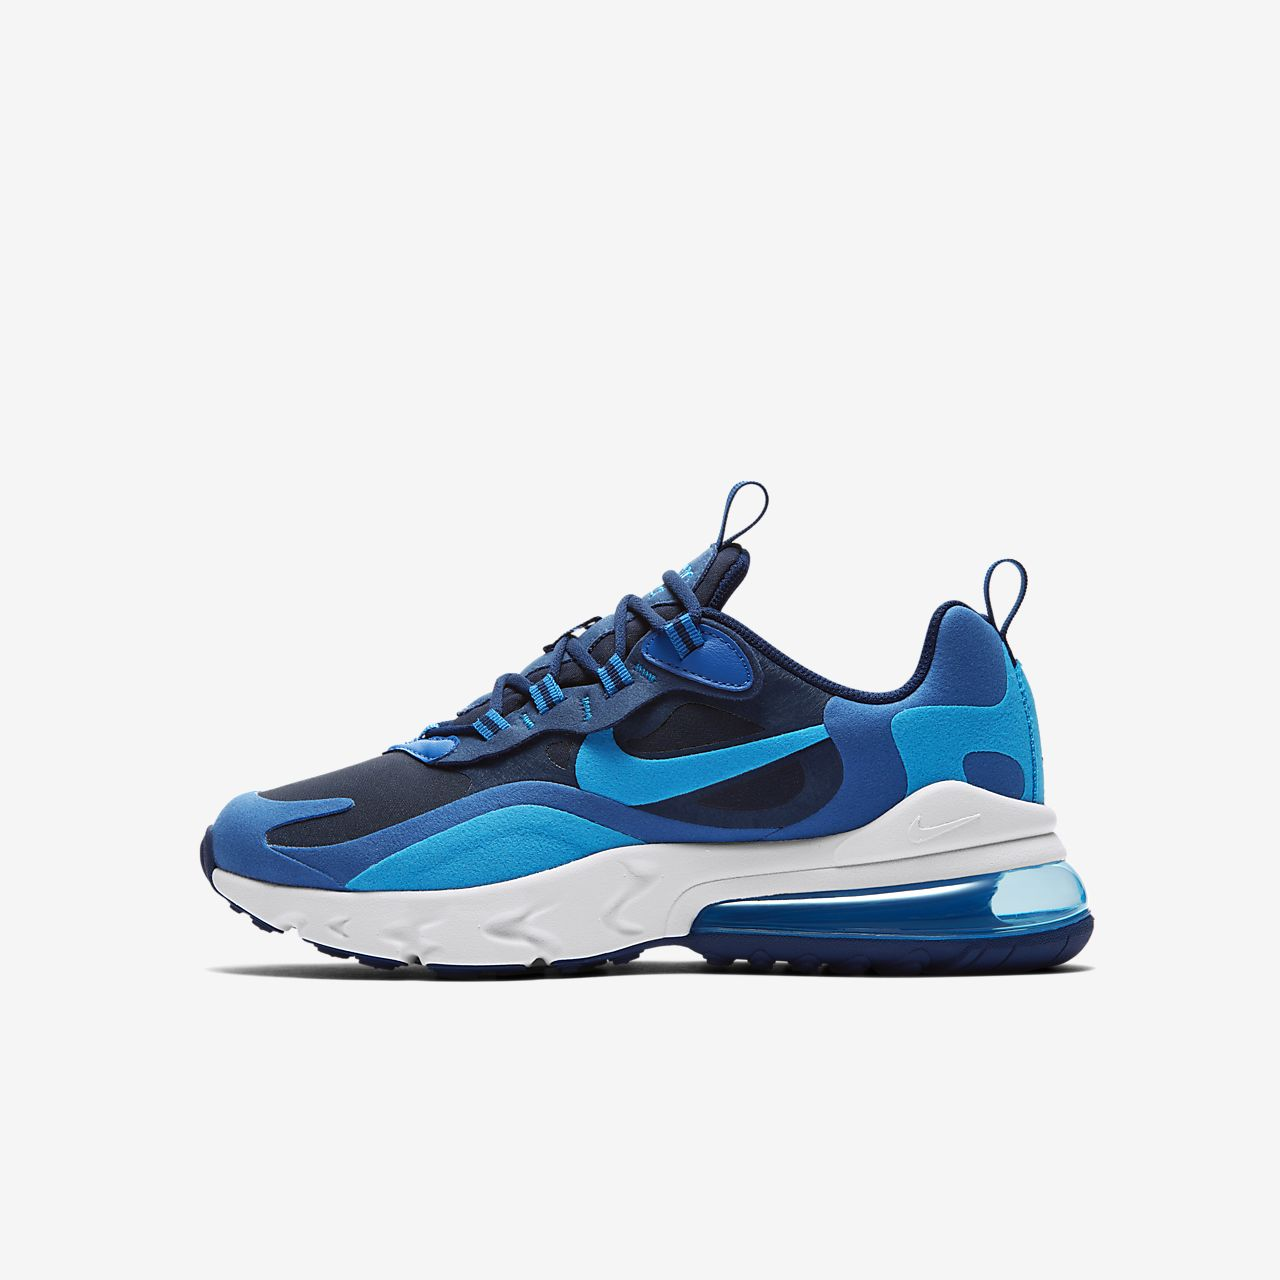 Nike Air Max 270 React Big Kids' Shoe